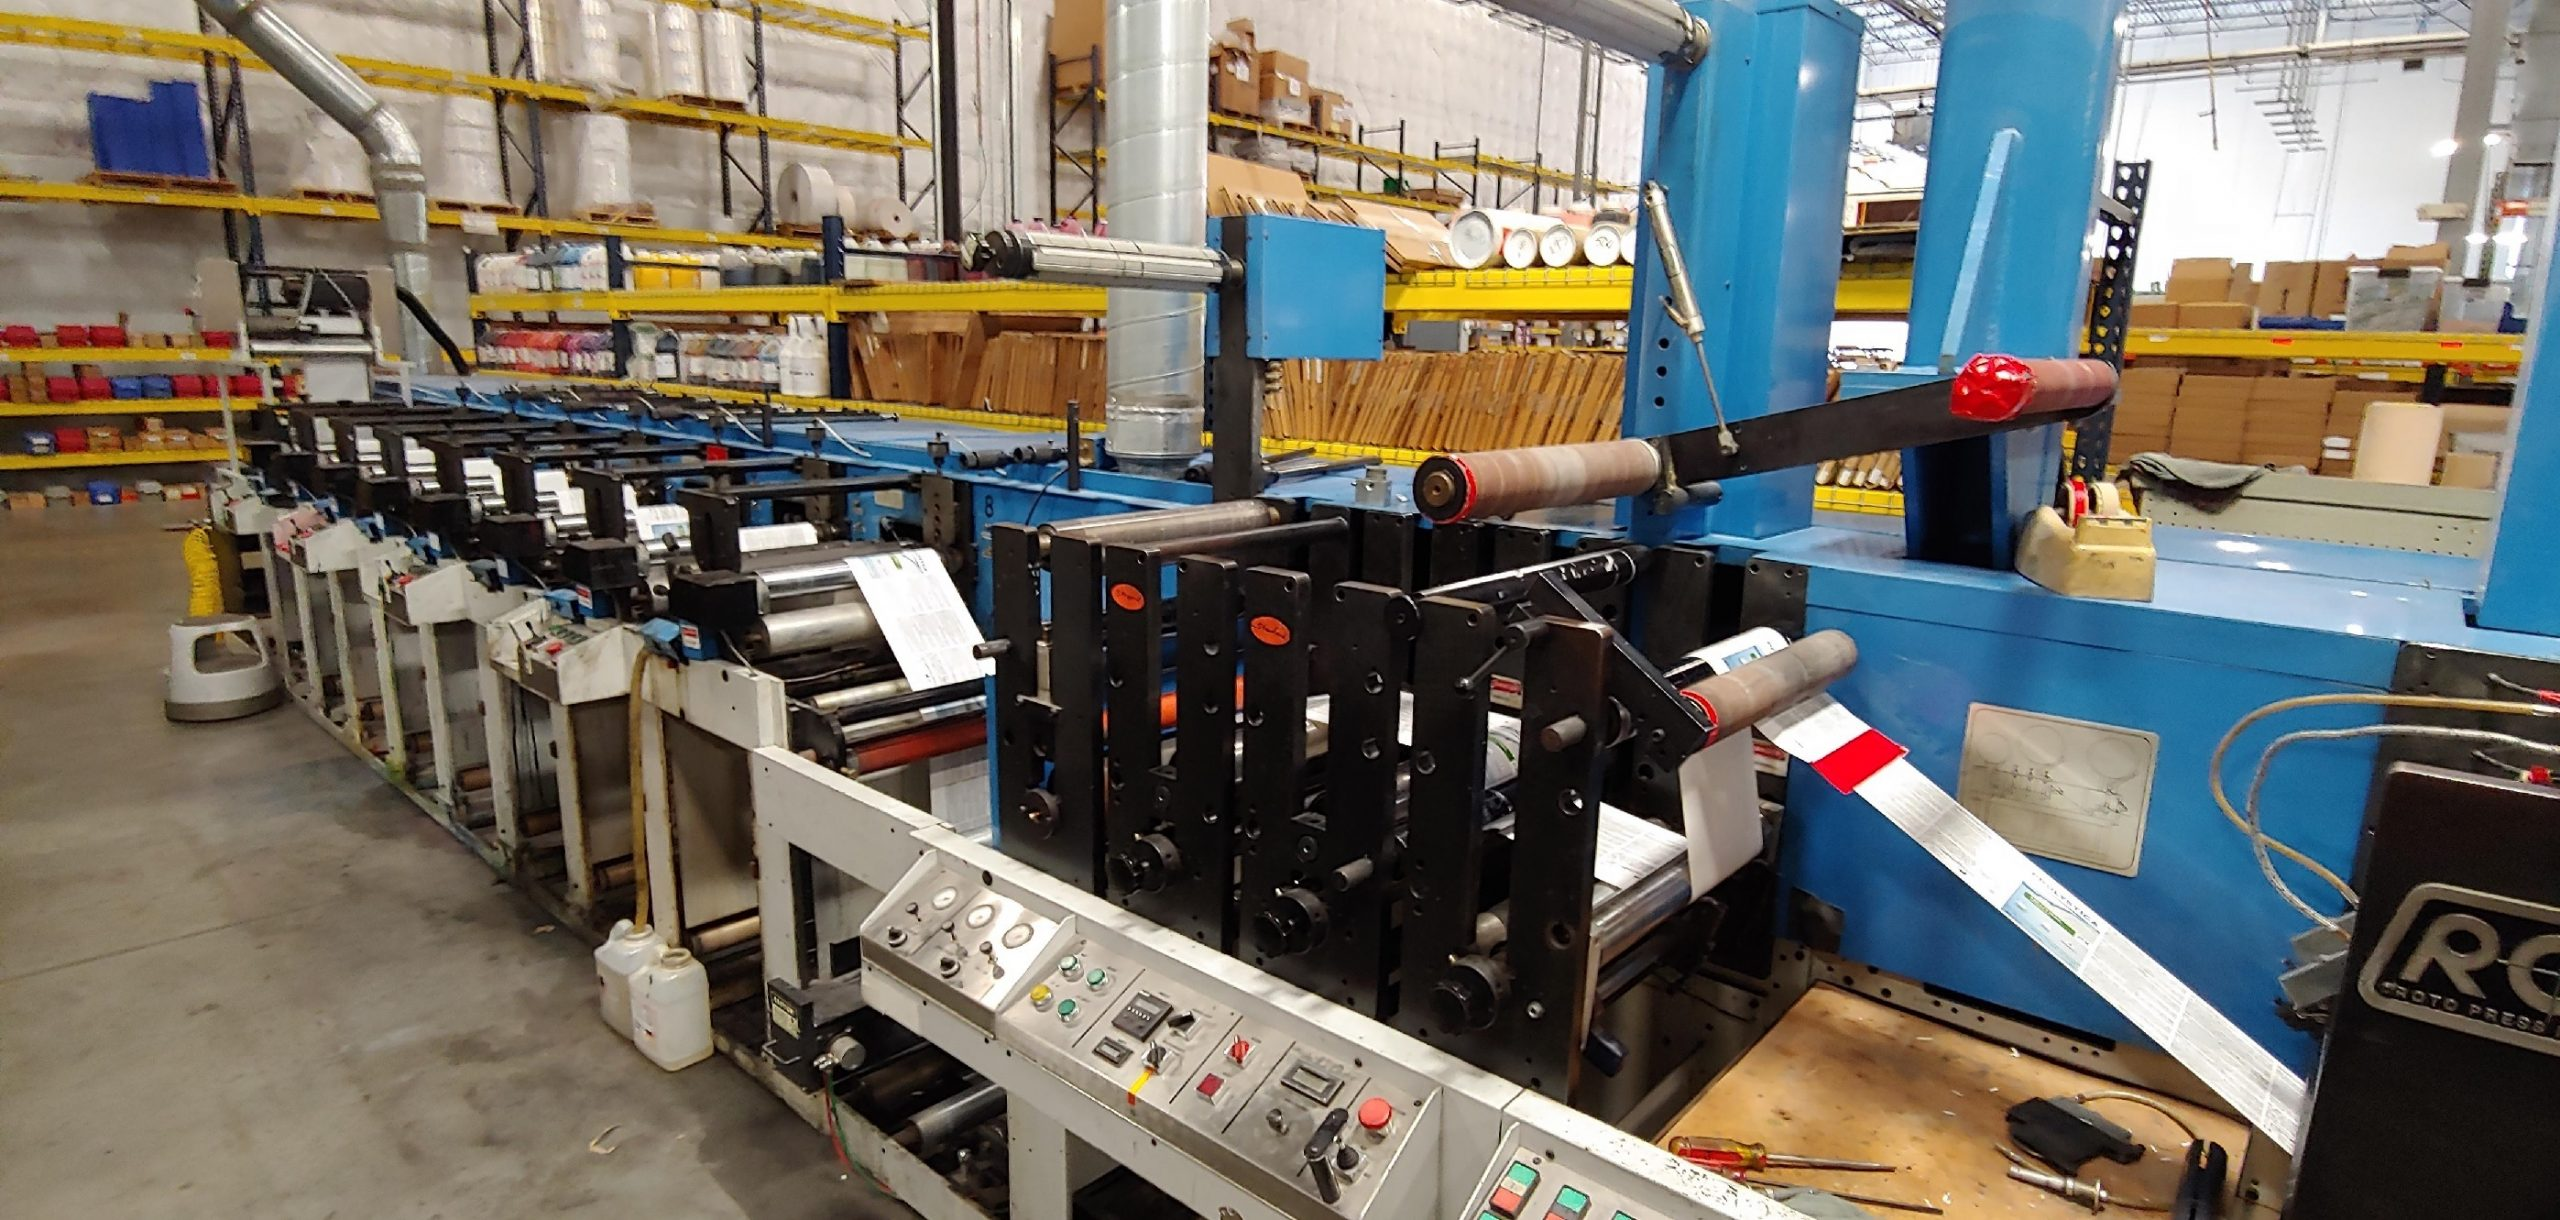 Rotopress 3516 - Used Flexo Printing Presses and Used Flexographic Equipment-0